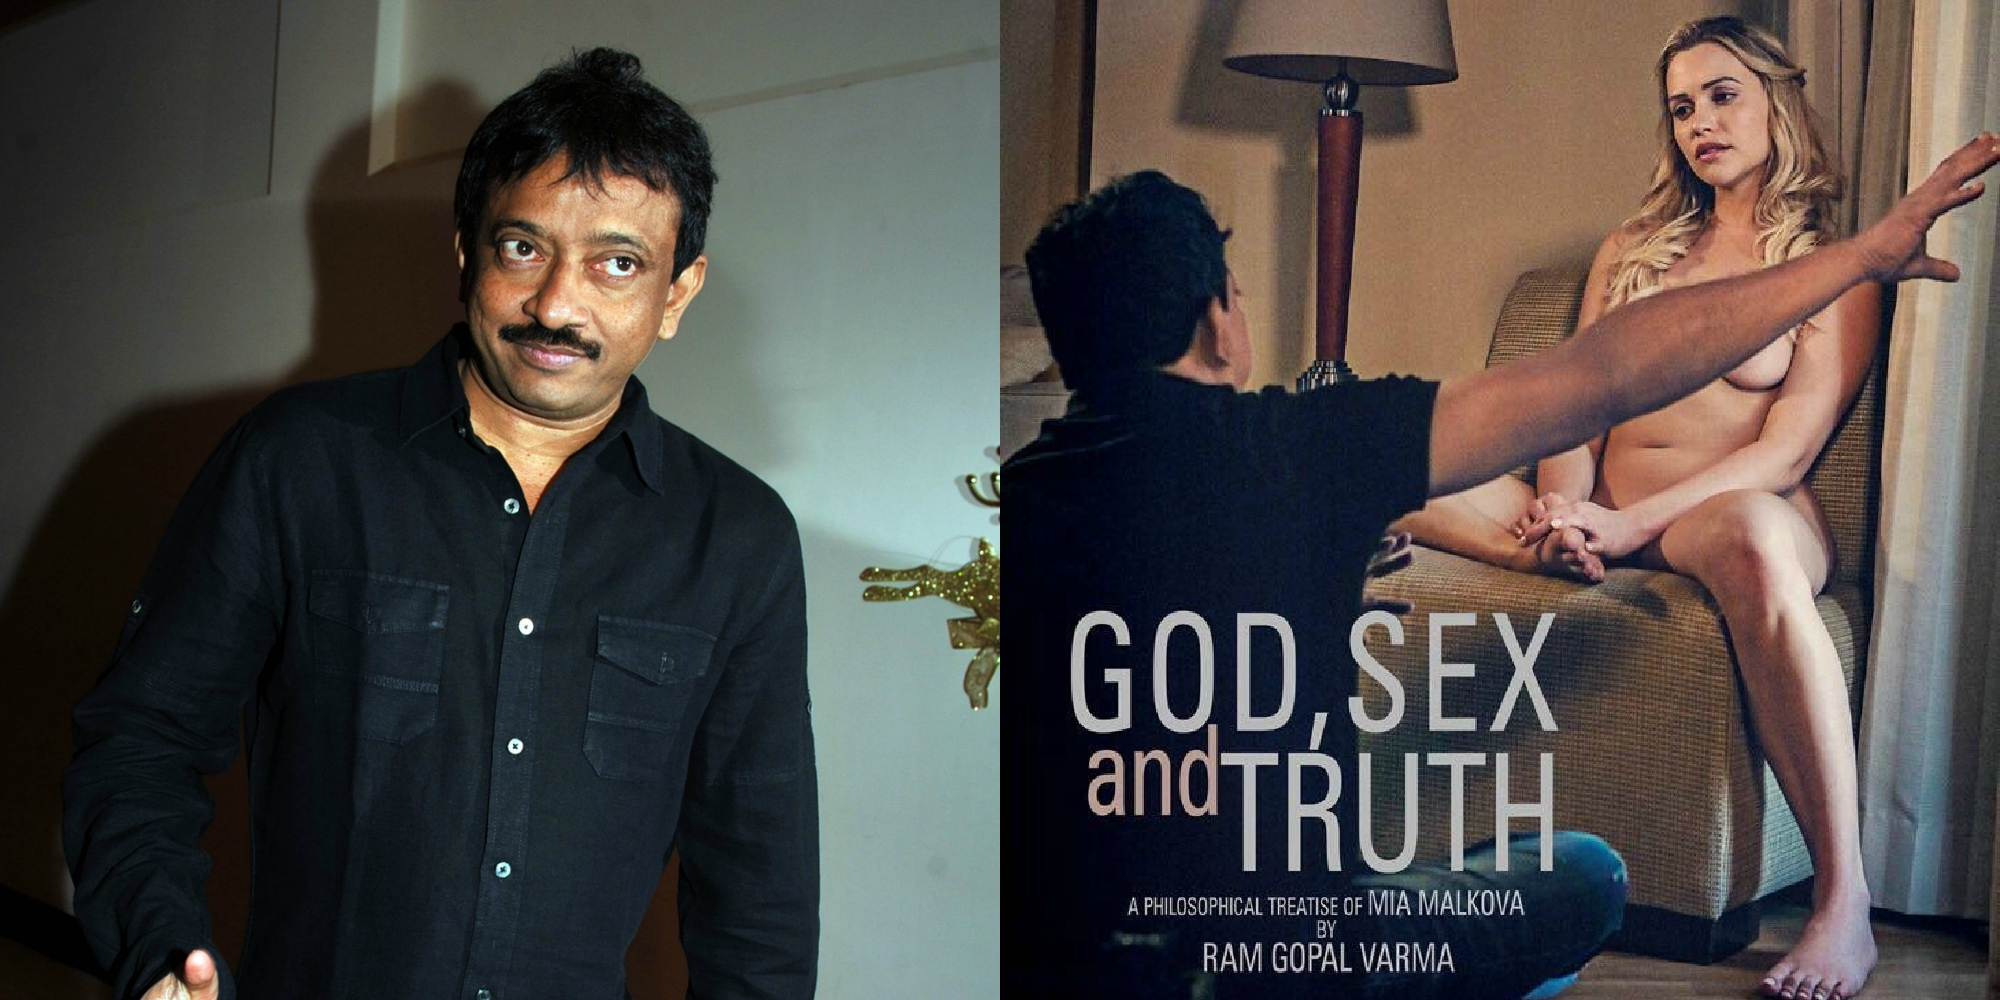 Ram-Gopal-Varma-God-Sex-and-Truth